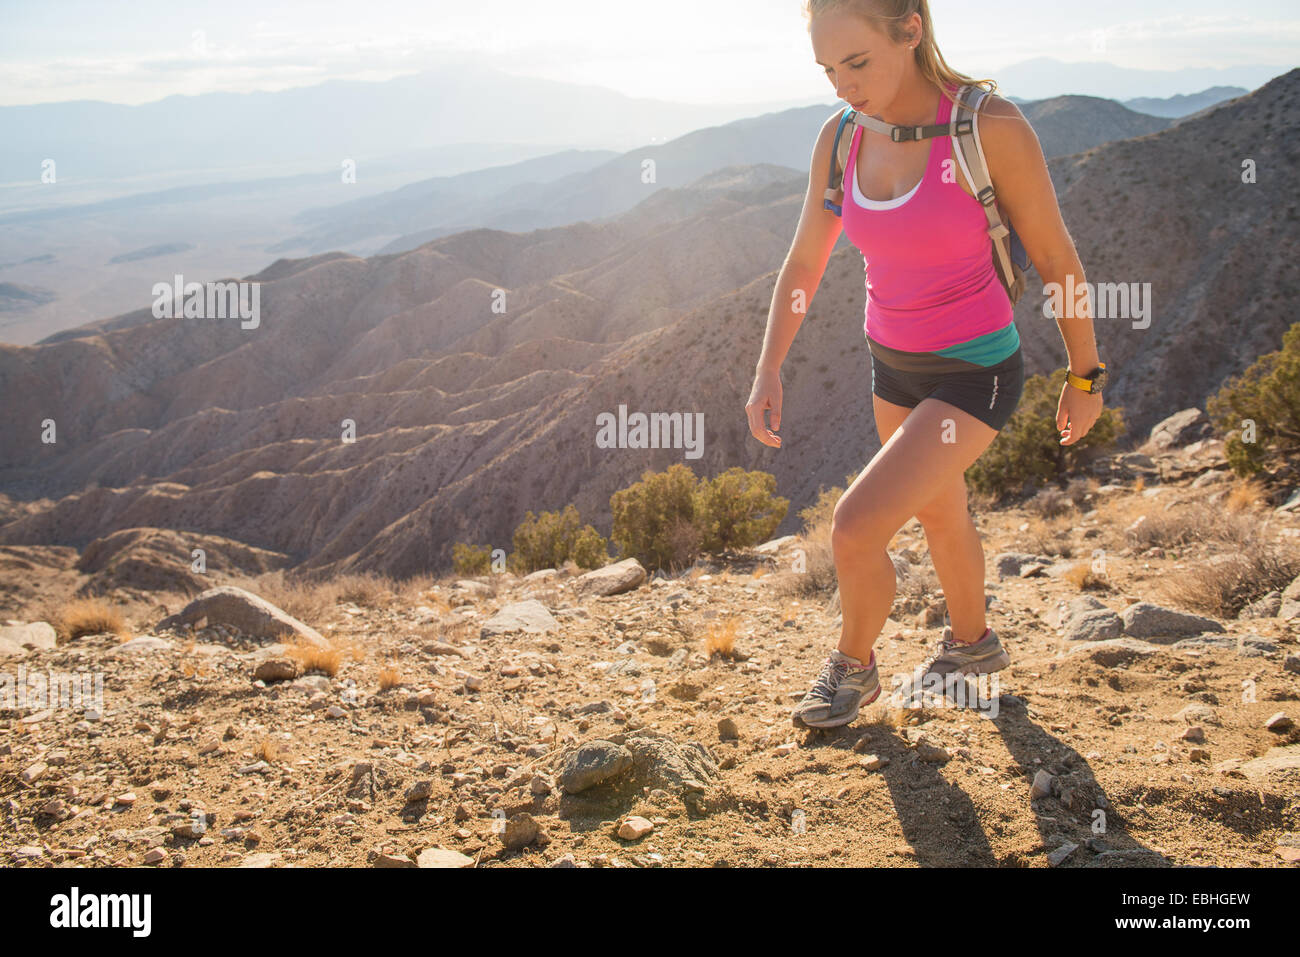 Woman Hiking, Joshua Tree National Park, California, US Immagini Stock